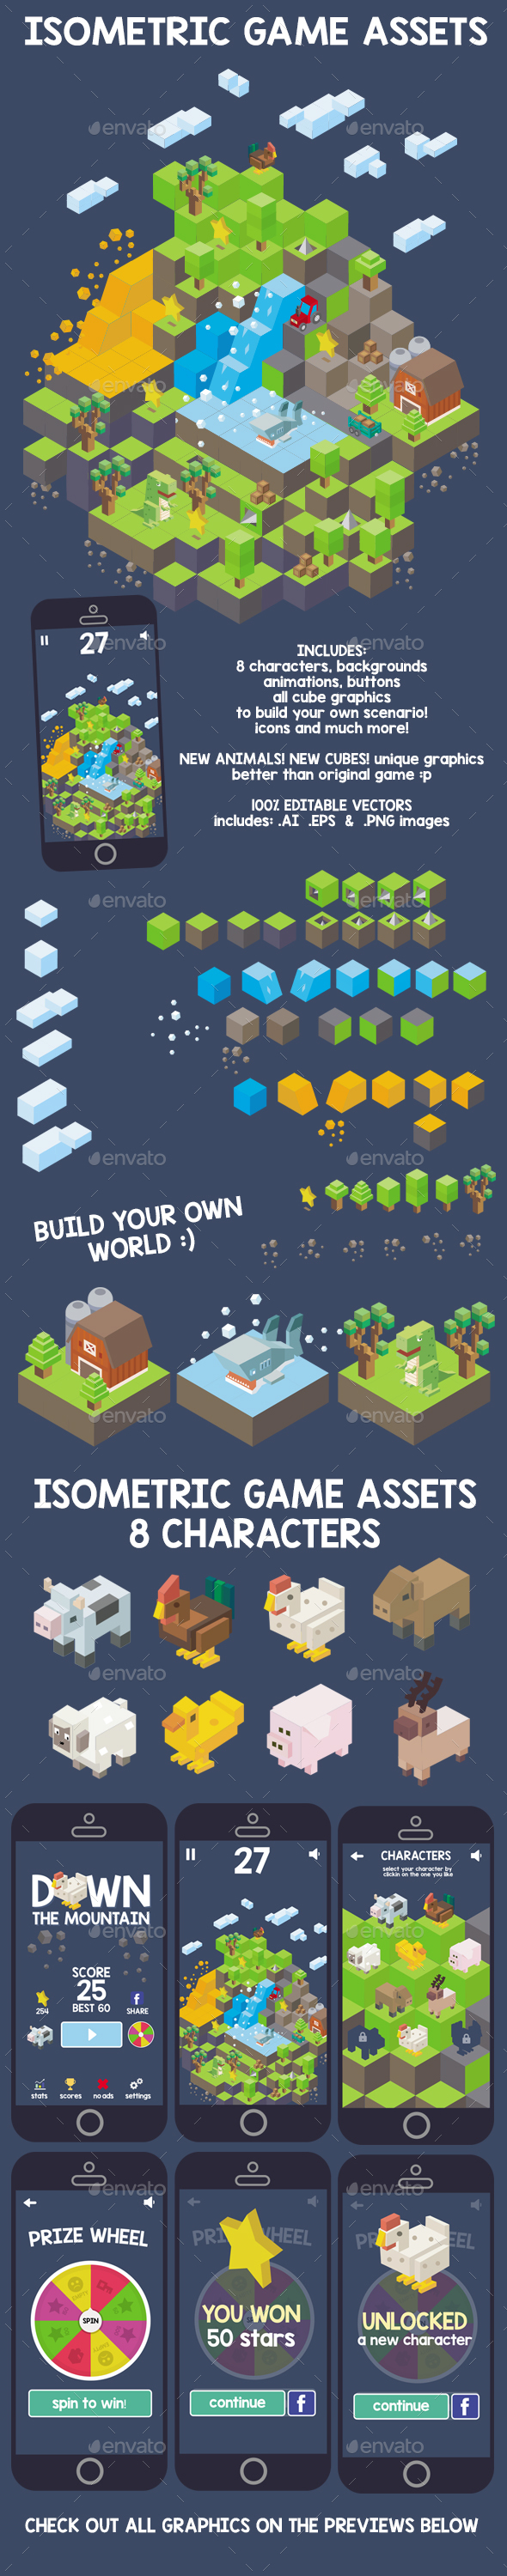 Isometric Game Assets - Down The Mountain - Game Kits Game Assets